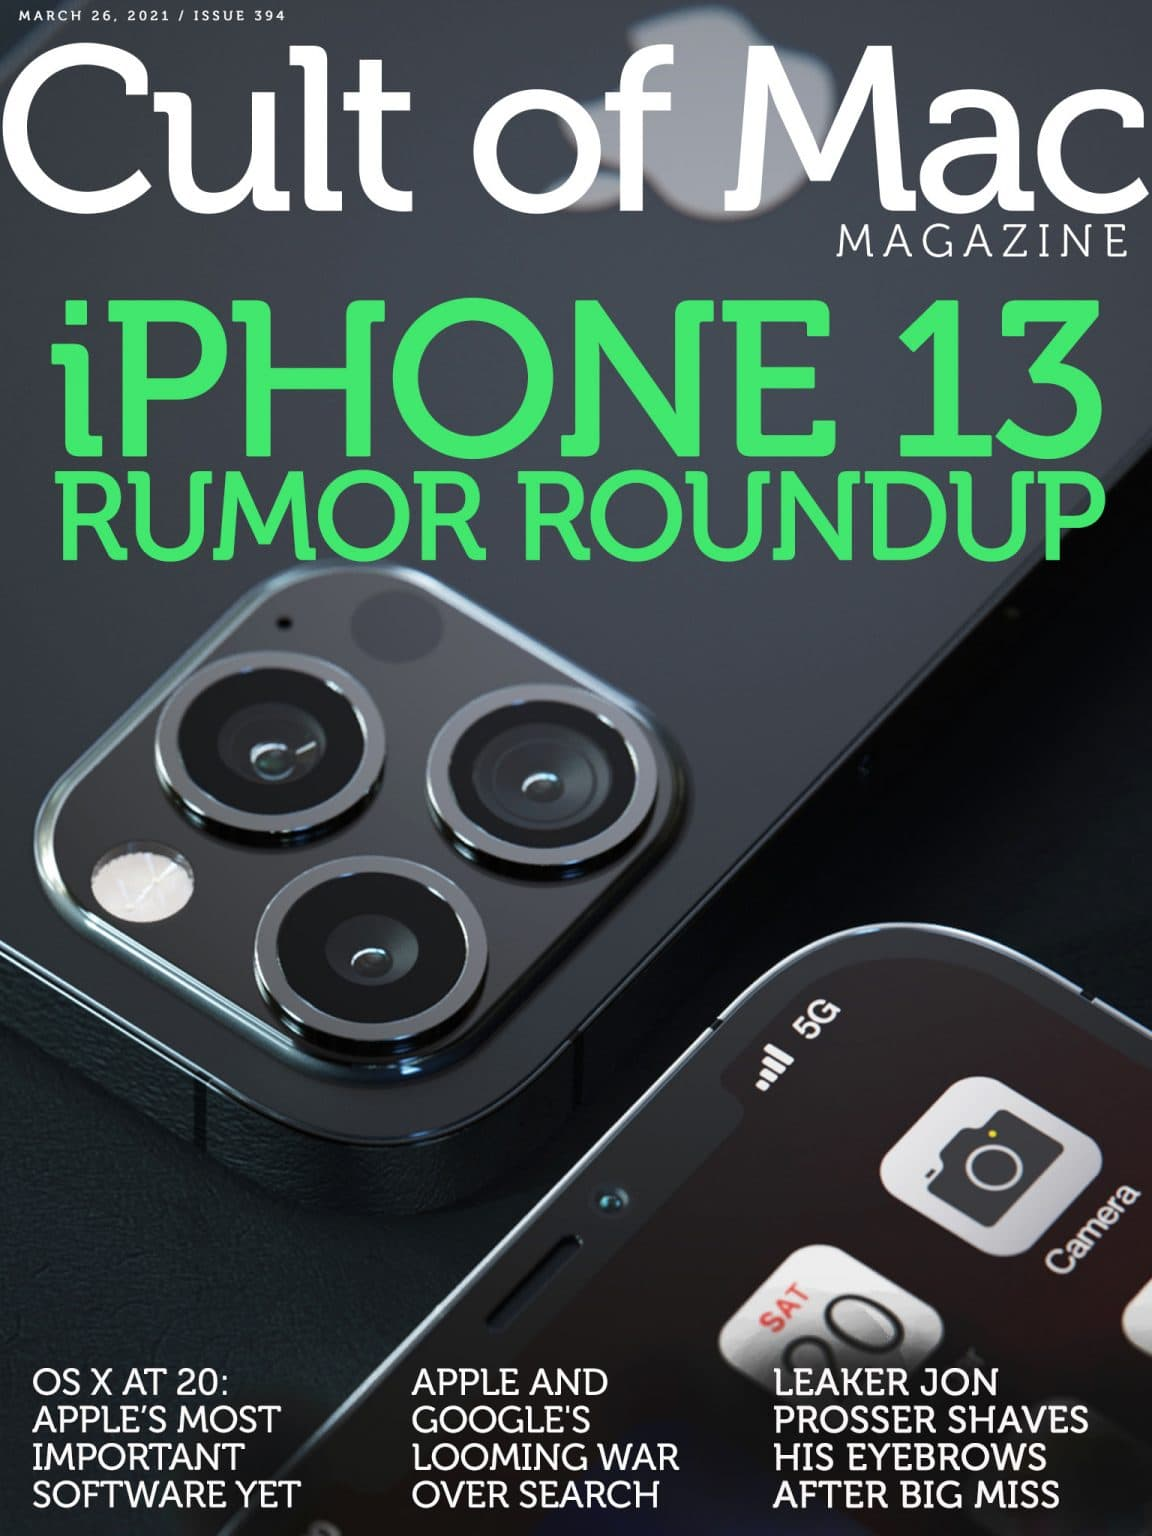 iPhone 13 rumor roundup: Here's what we know so far.